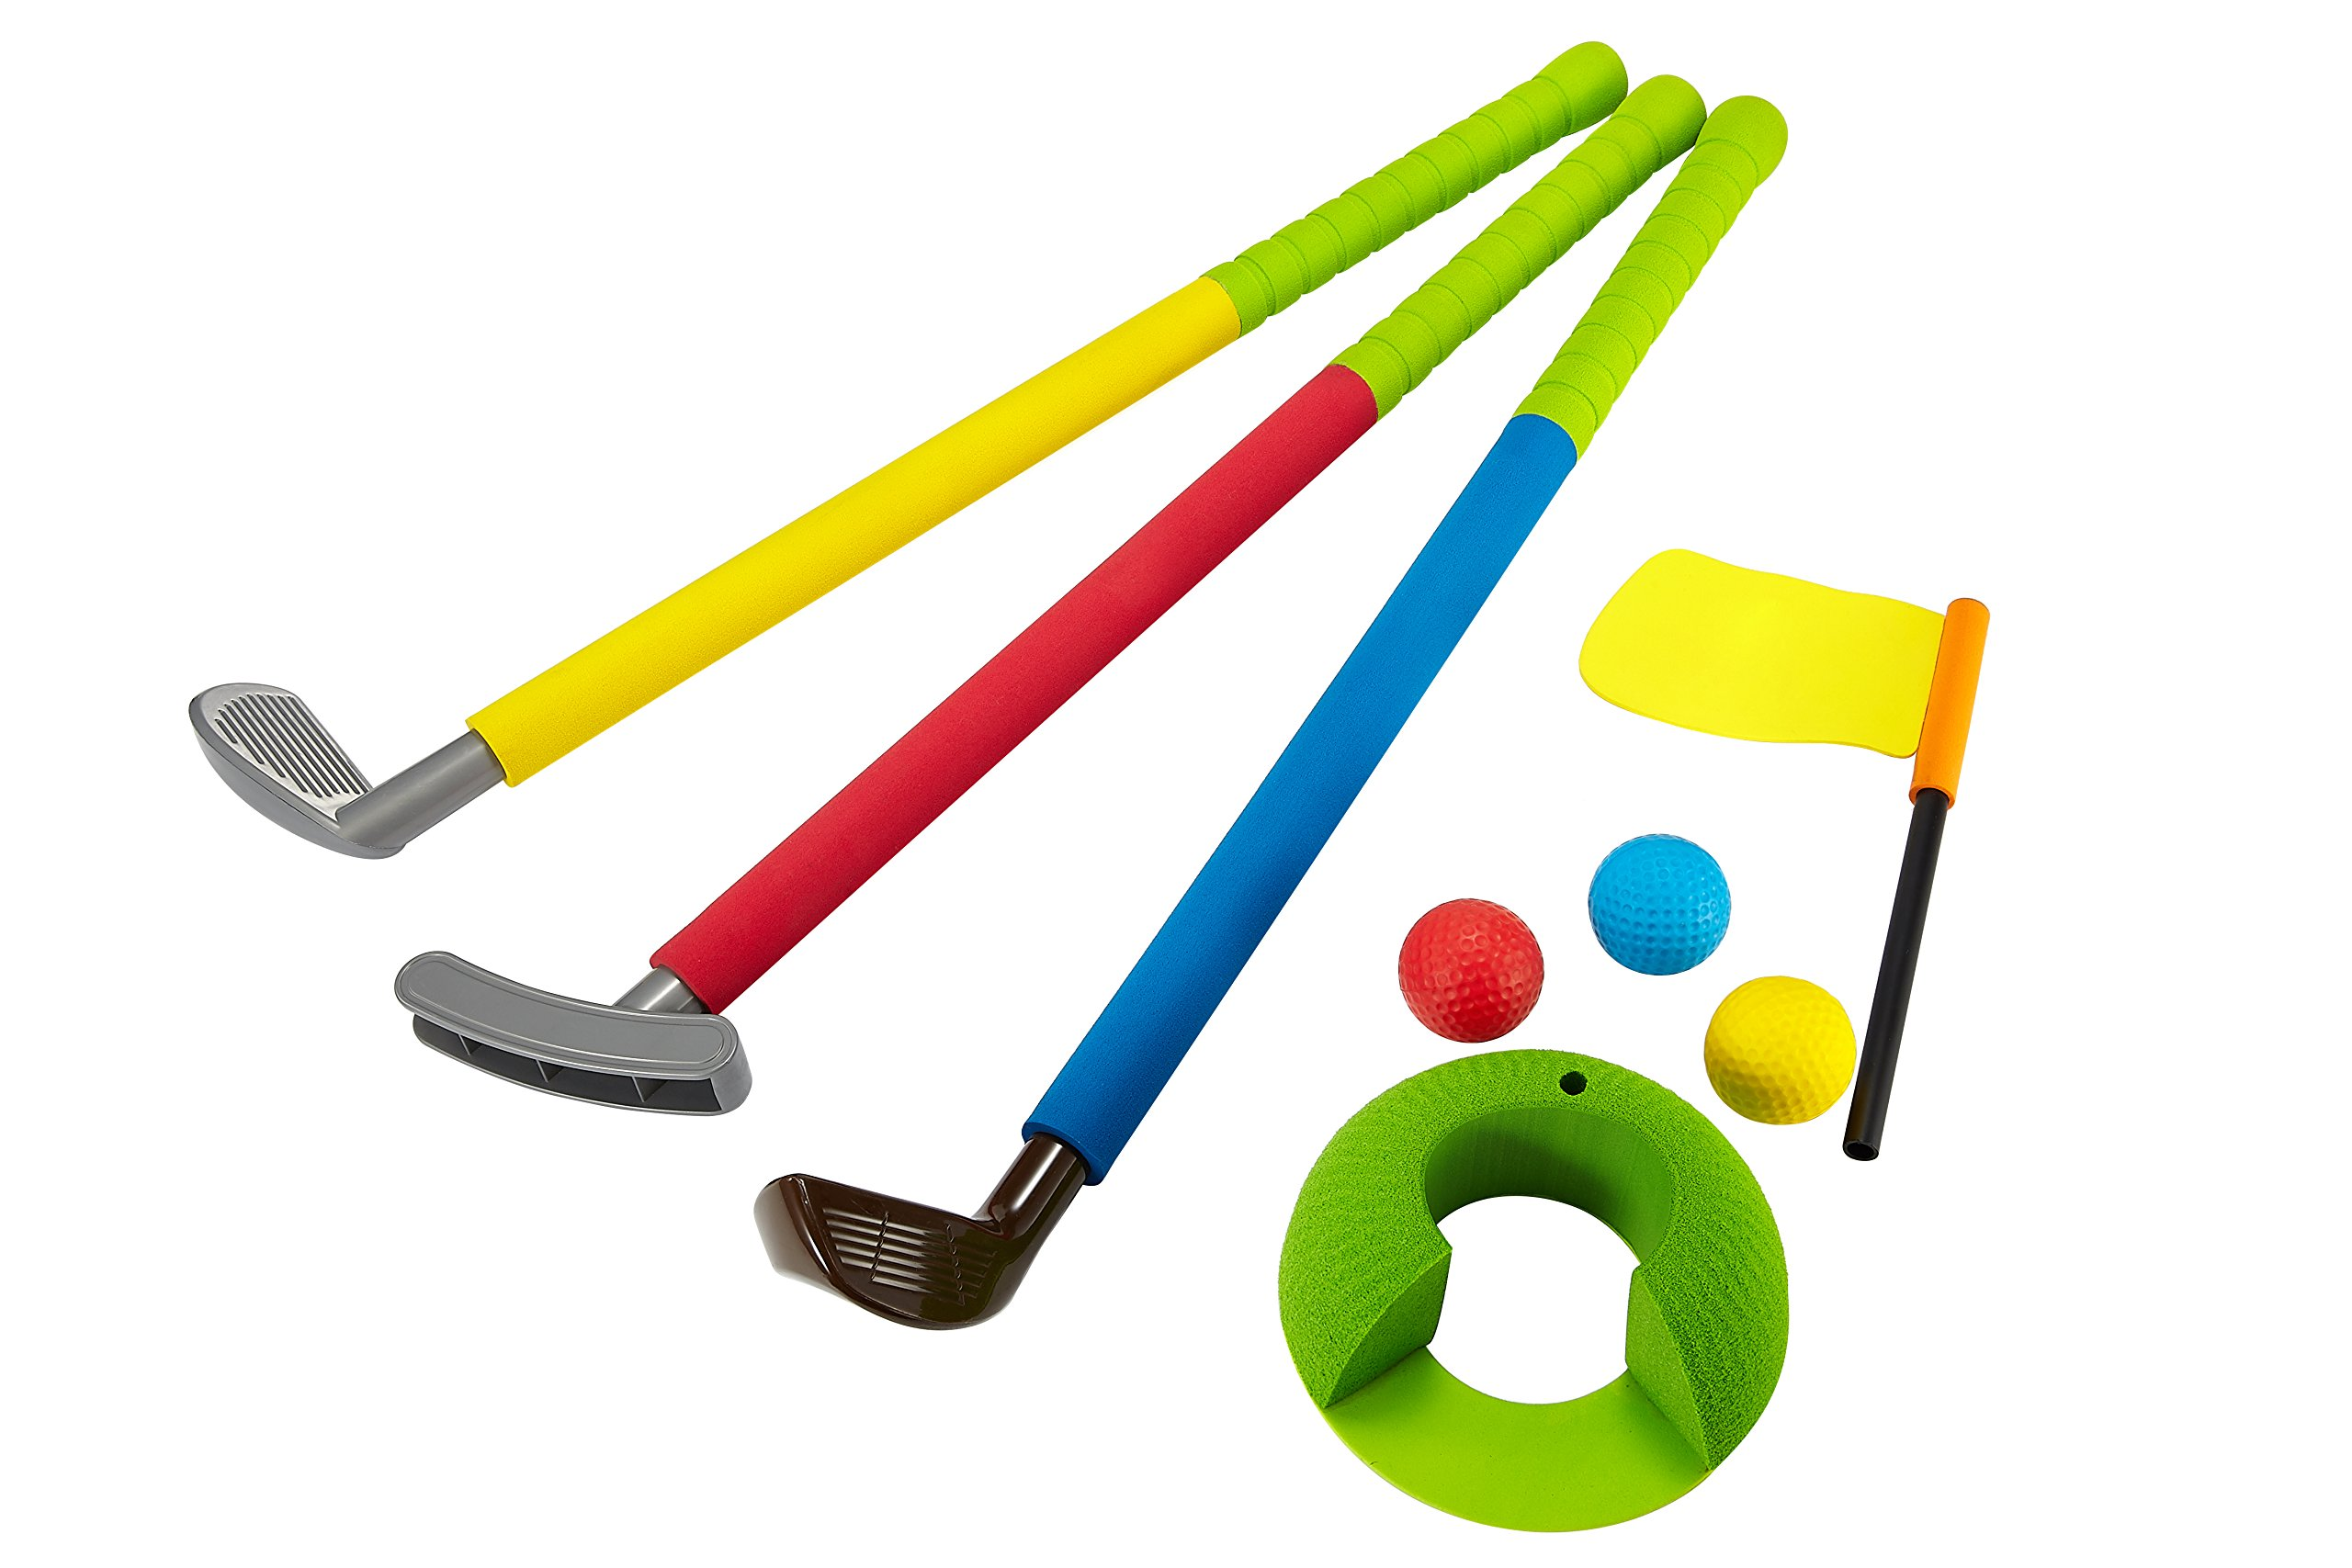 Uarzt Soft Foam Glof Sets Toys for Kids Childrens Toddler Indoor/Outdoor,Easy hit Golf Clubs Set/3 Balls,4 Types of Clubs,1 Hole and Golf Flag (Glof Sets)